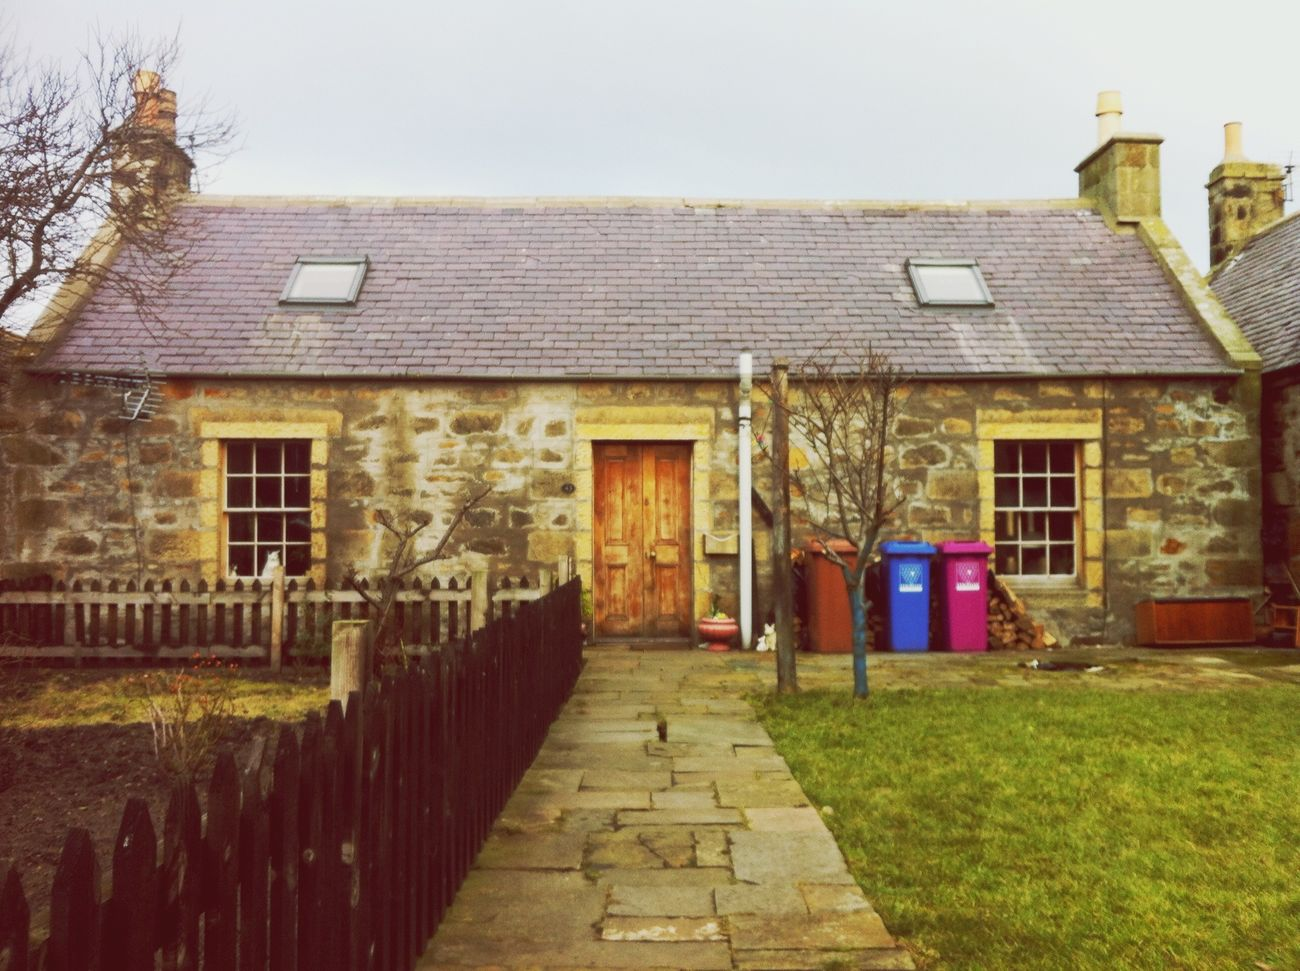 House and Bins in Scotland Colour Everywhere